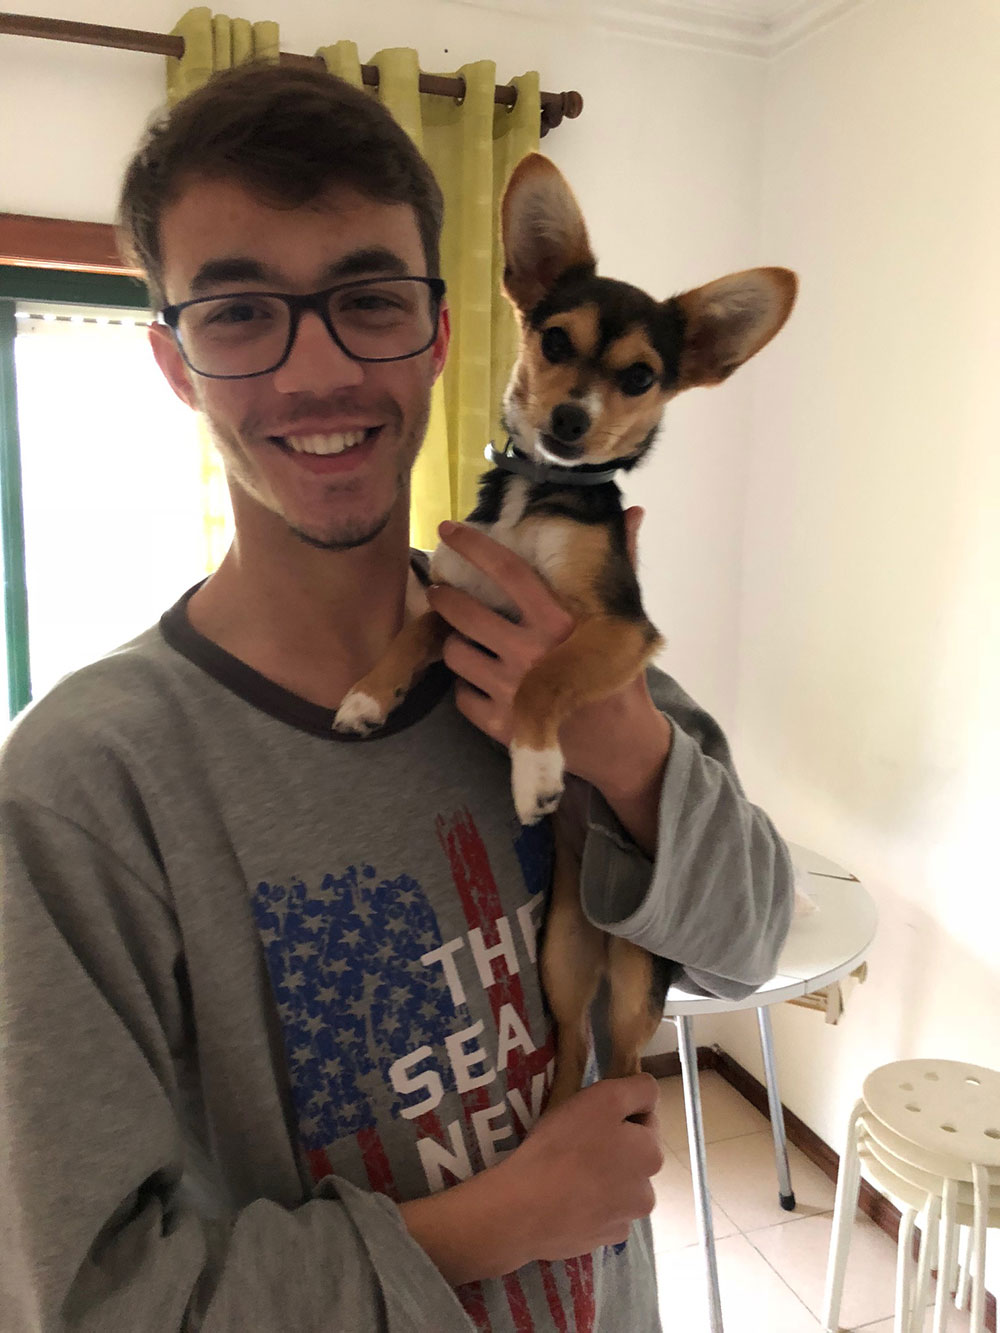 We love Nami's expressive ears! Here he is having a goodbye cuddle with Marciu, who took care of him for a few days until we called in to collect him.